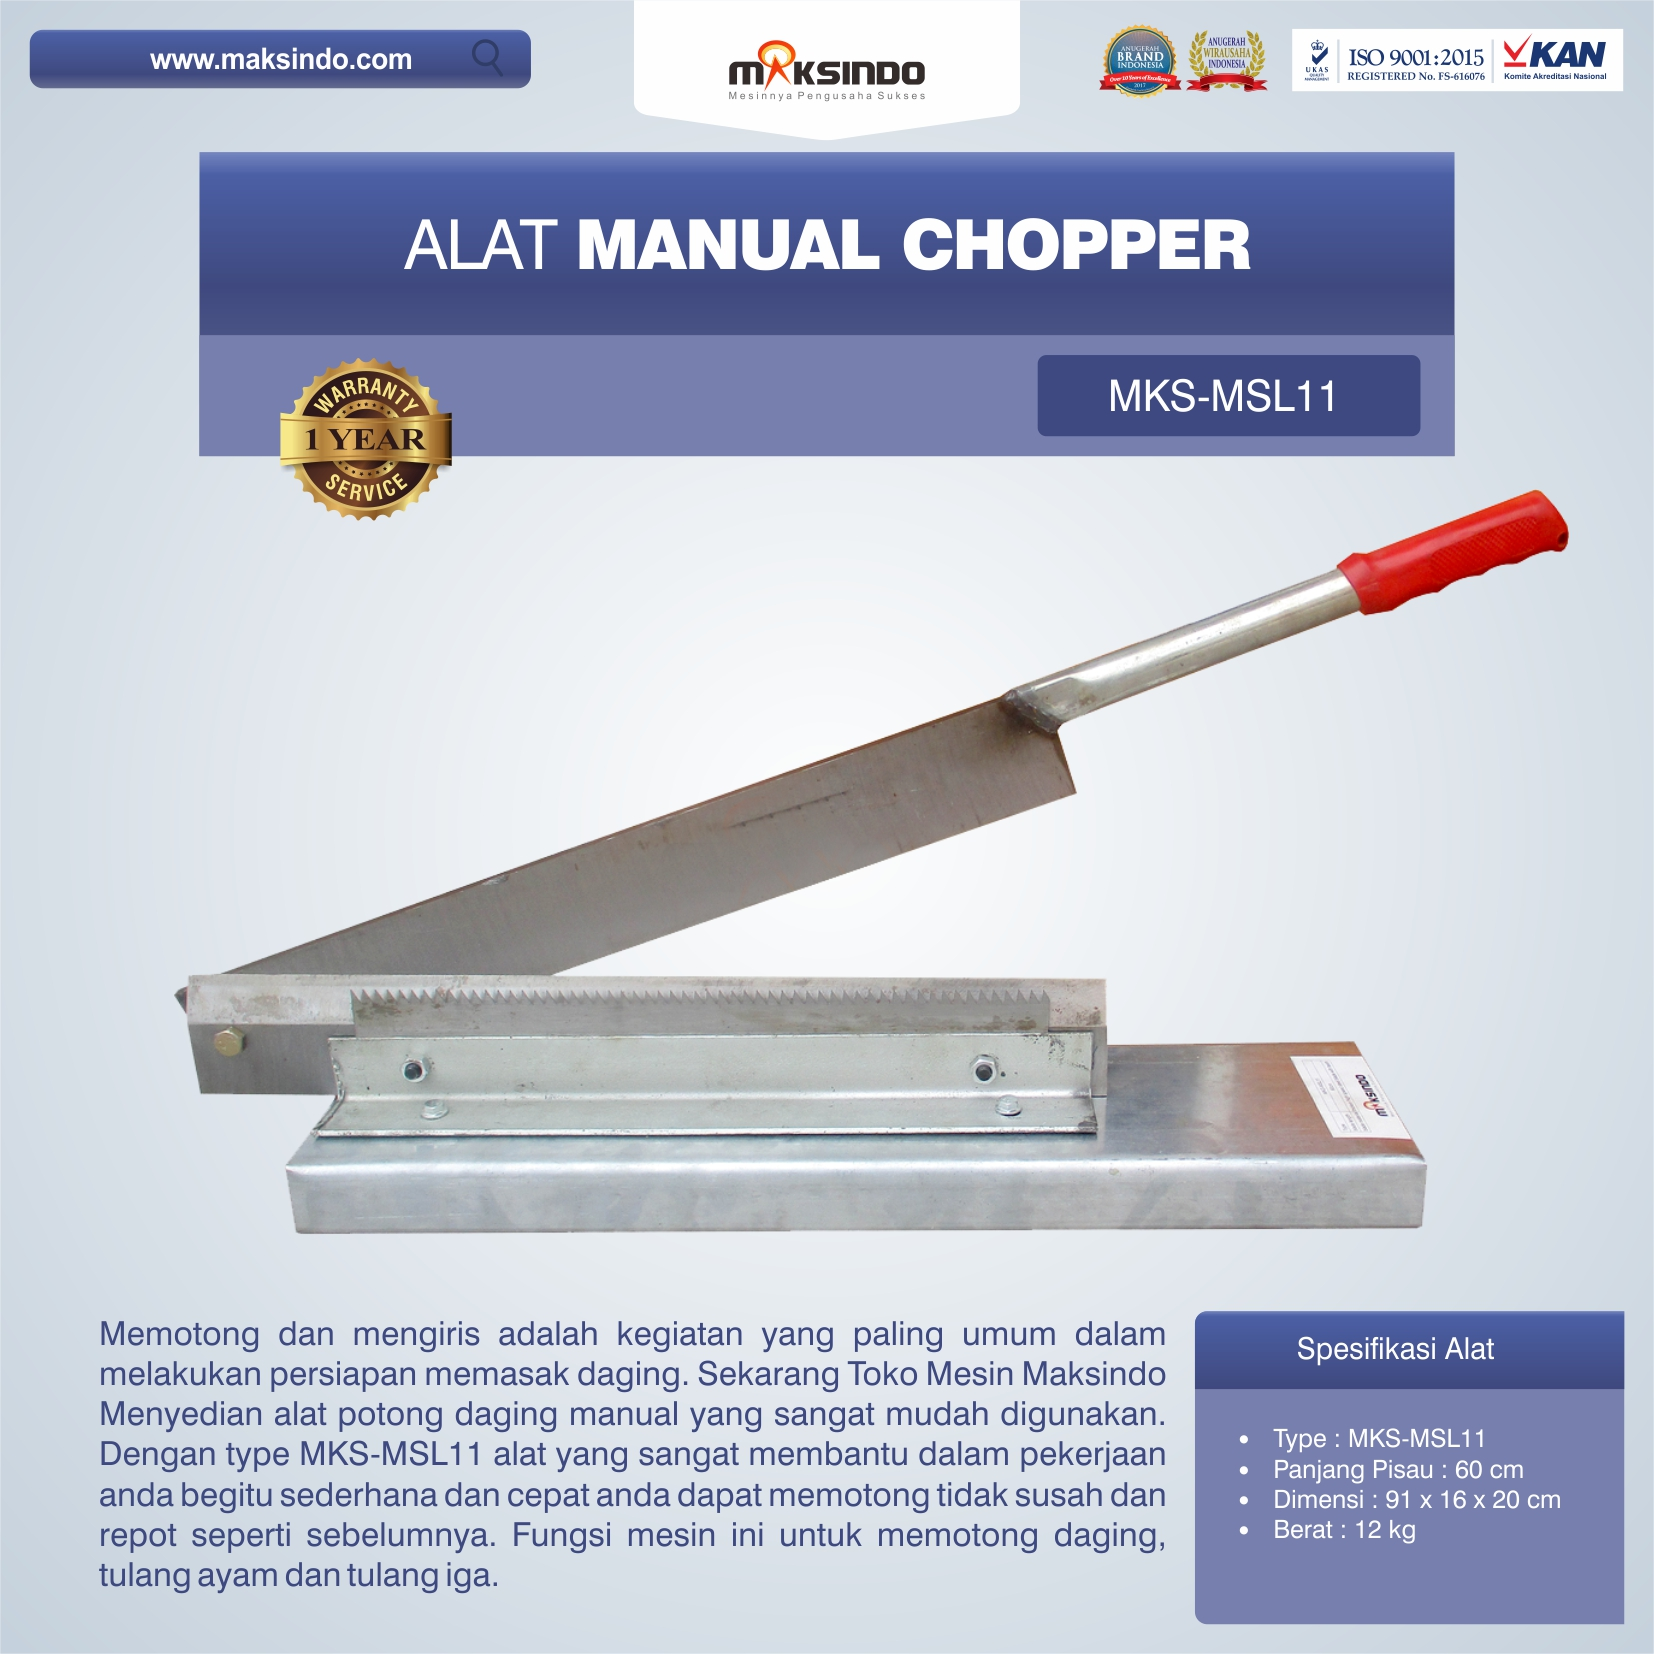 Jual Alat Manual Chopper MKS-MSL11 di Medan